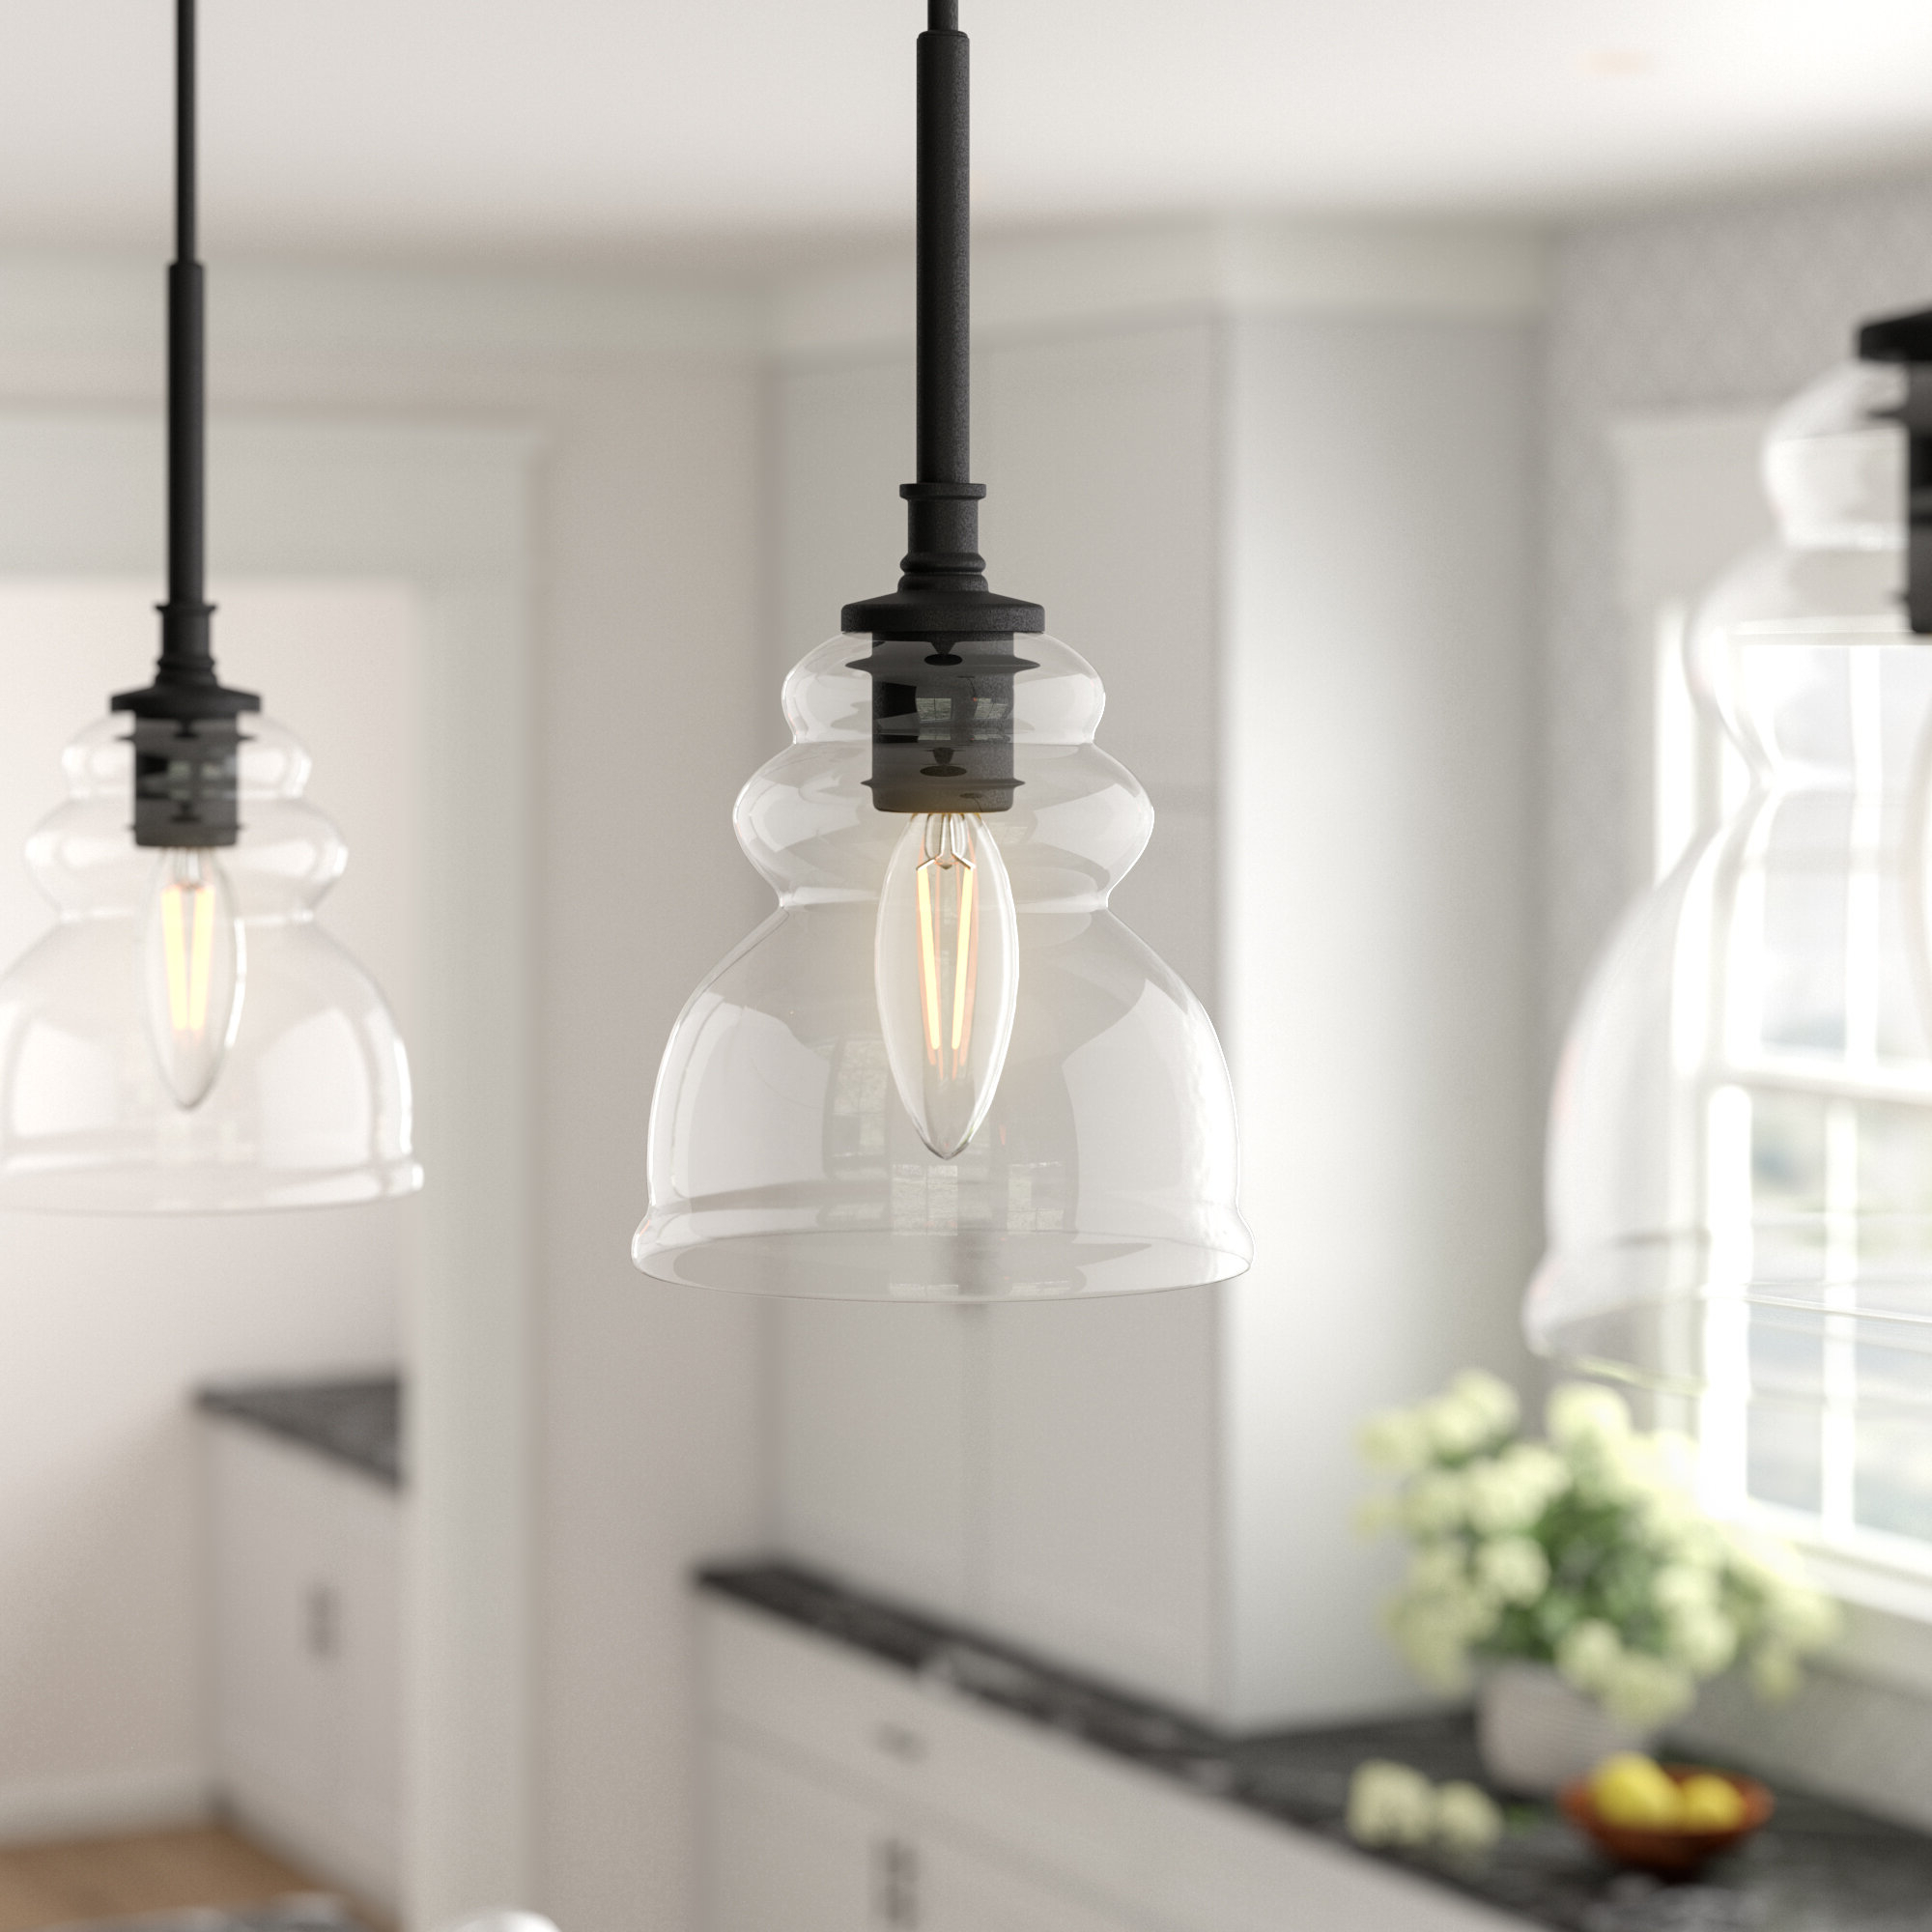 Goldie 1 Light Single Bell Pendants Throughout Fashionable Arla 1 Light Single Bell Pendant (View 10 of 20)